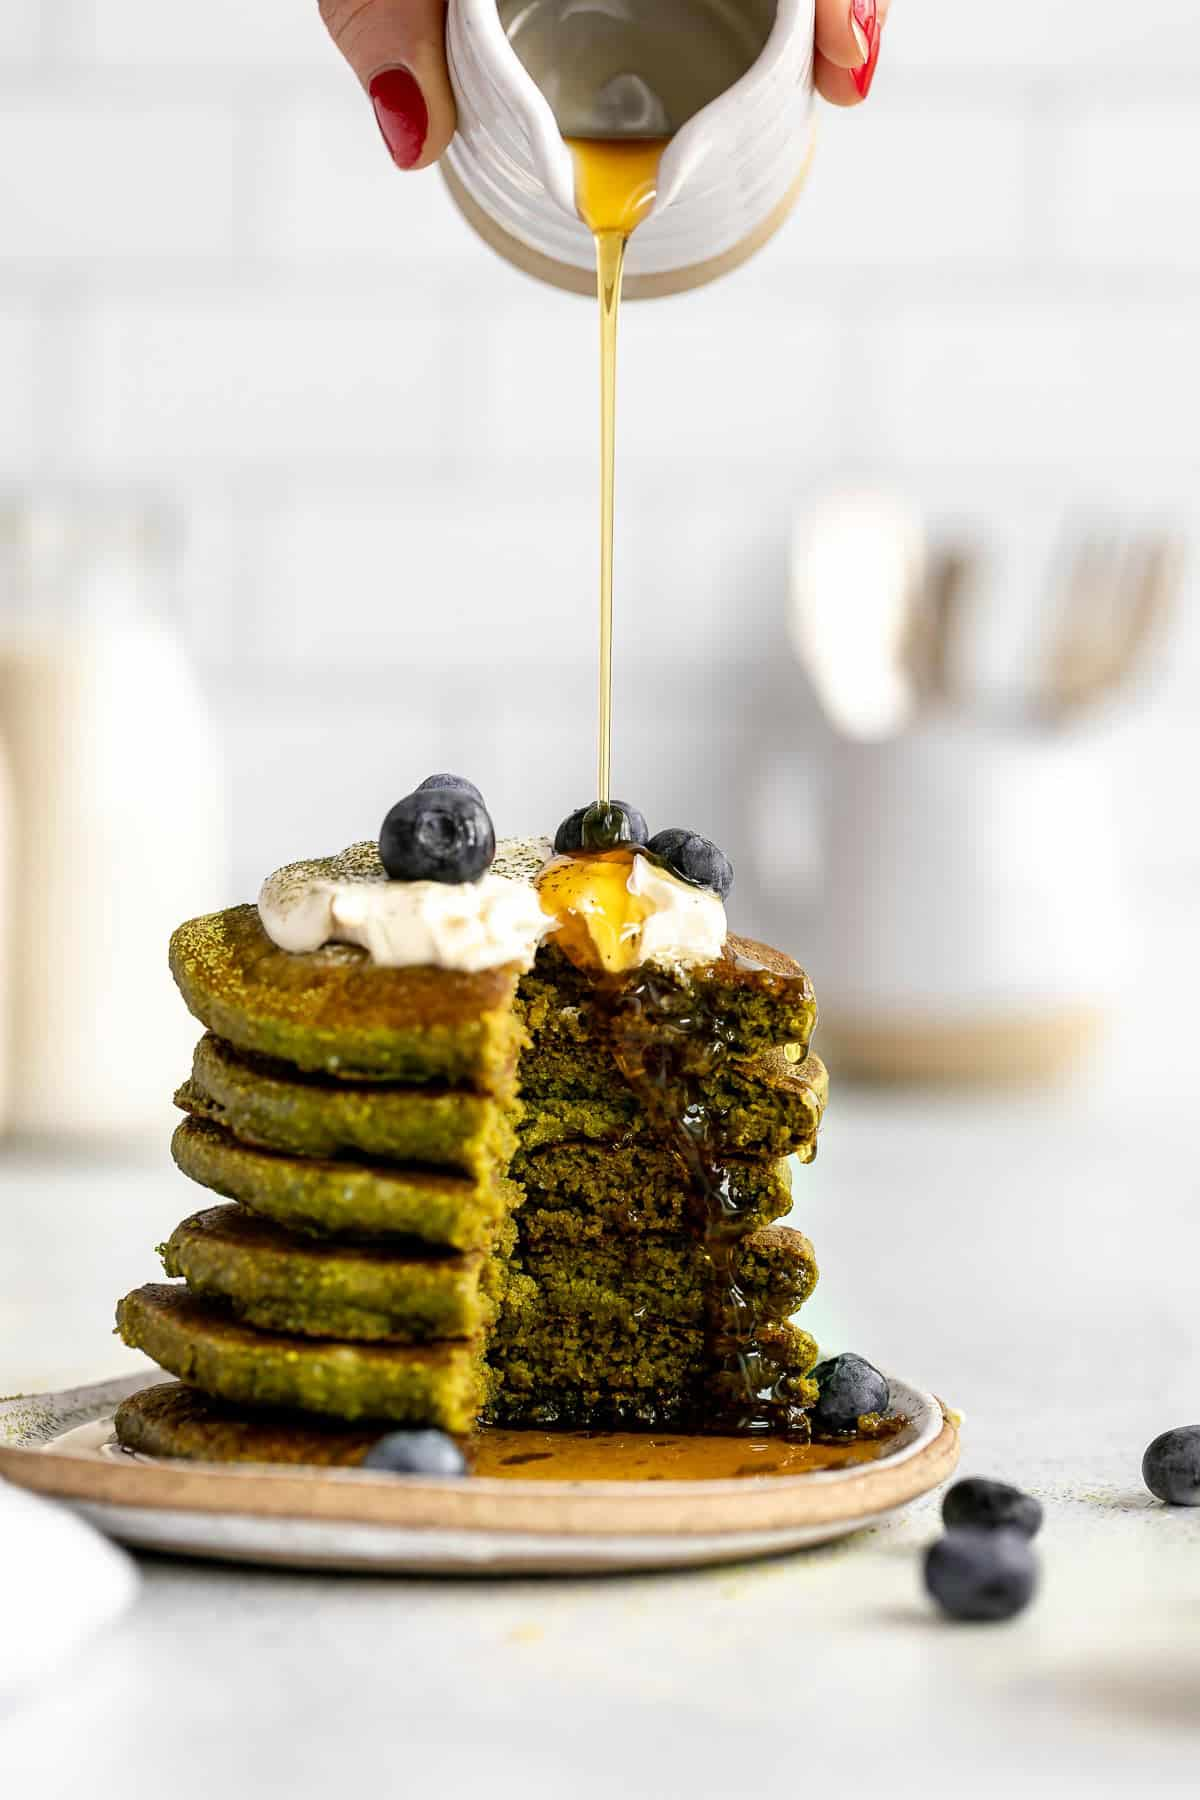 stack of match pancakes with a bite cut out to show texture